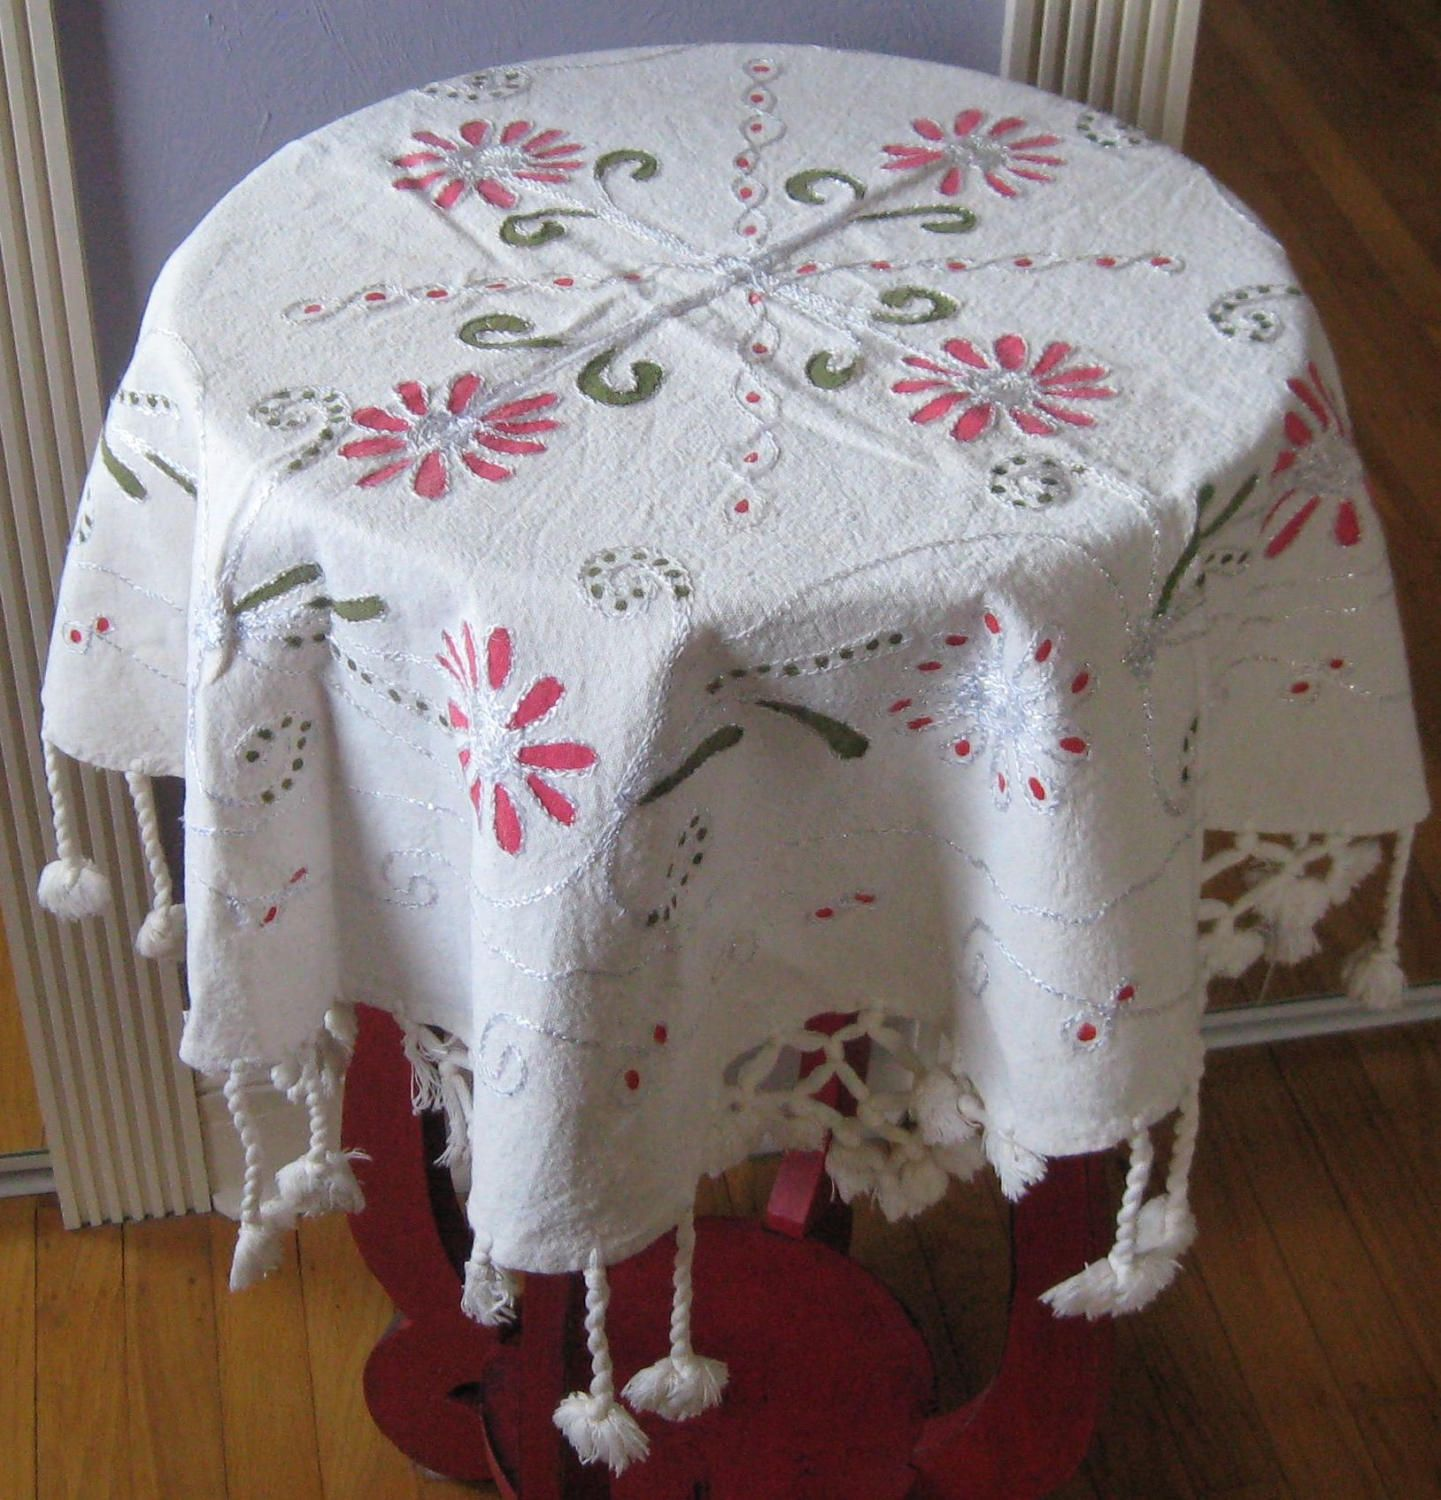 Table Topper. Small Round Tablecloth . Turkish Table Topper . Tassel Table  Topper . Embroidered Table Topper . Made In Turkey By Vintagous On Etsy